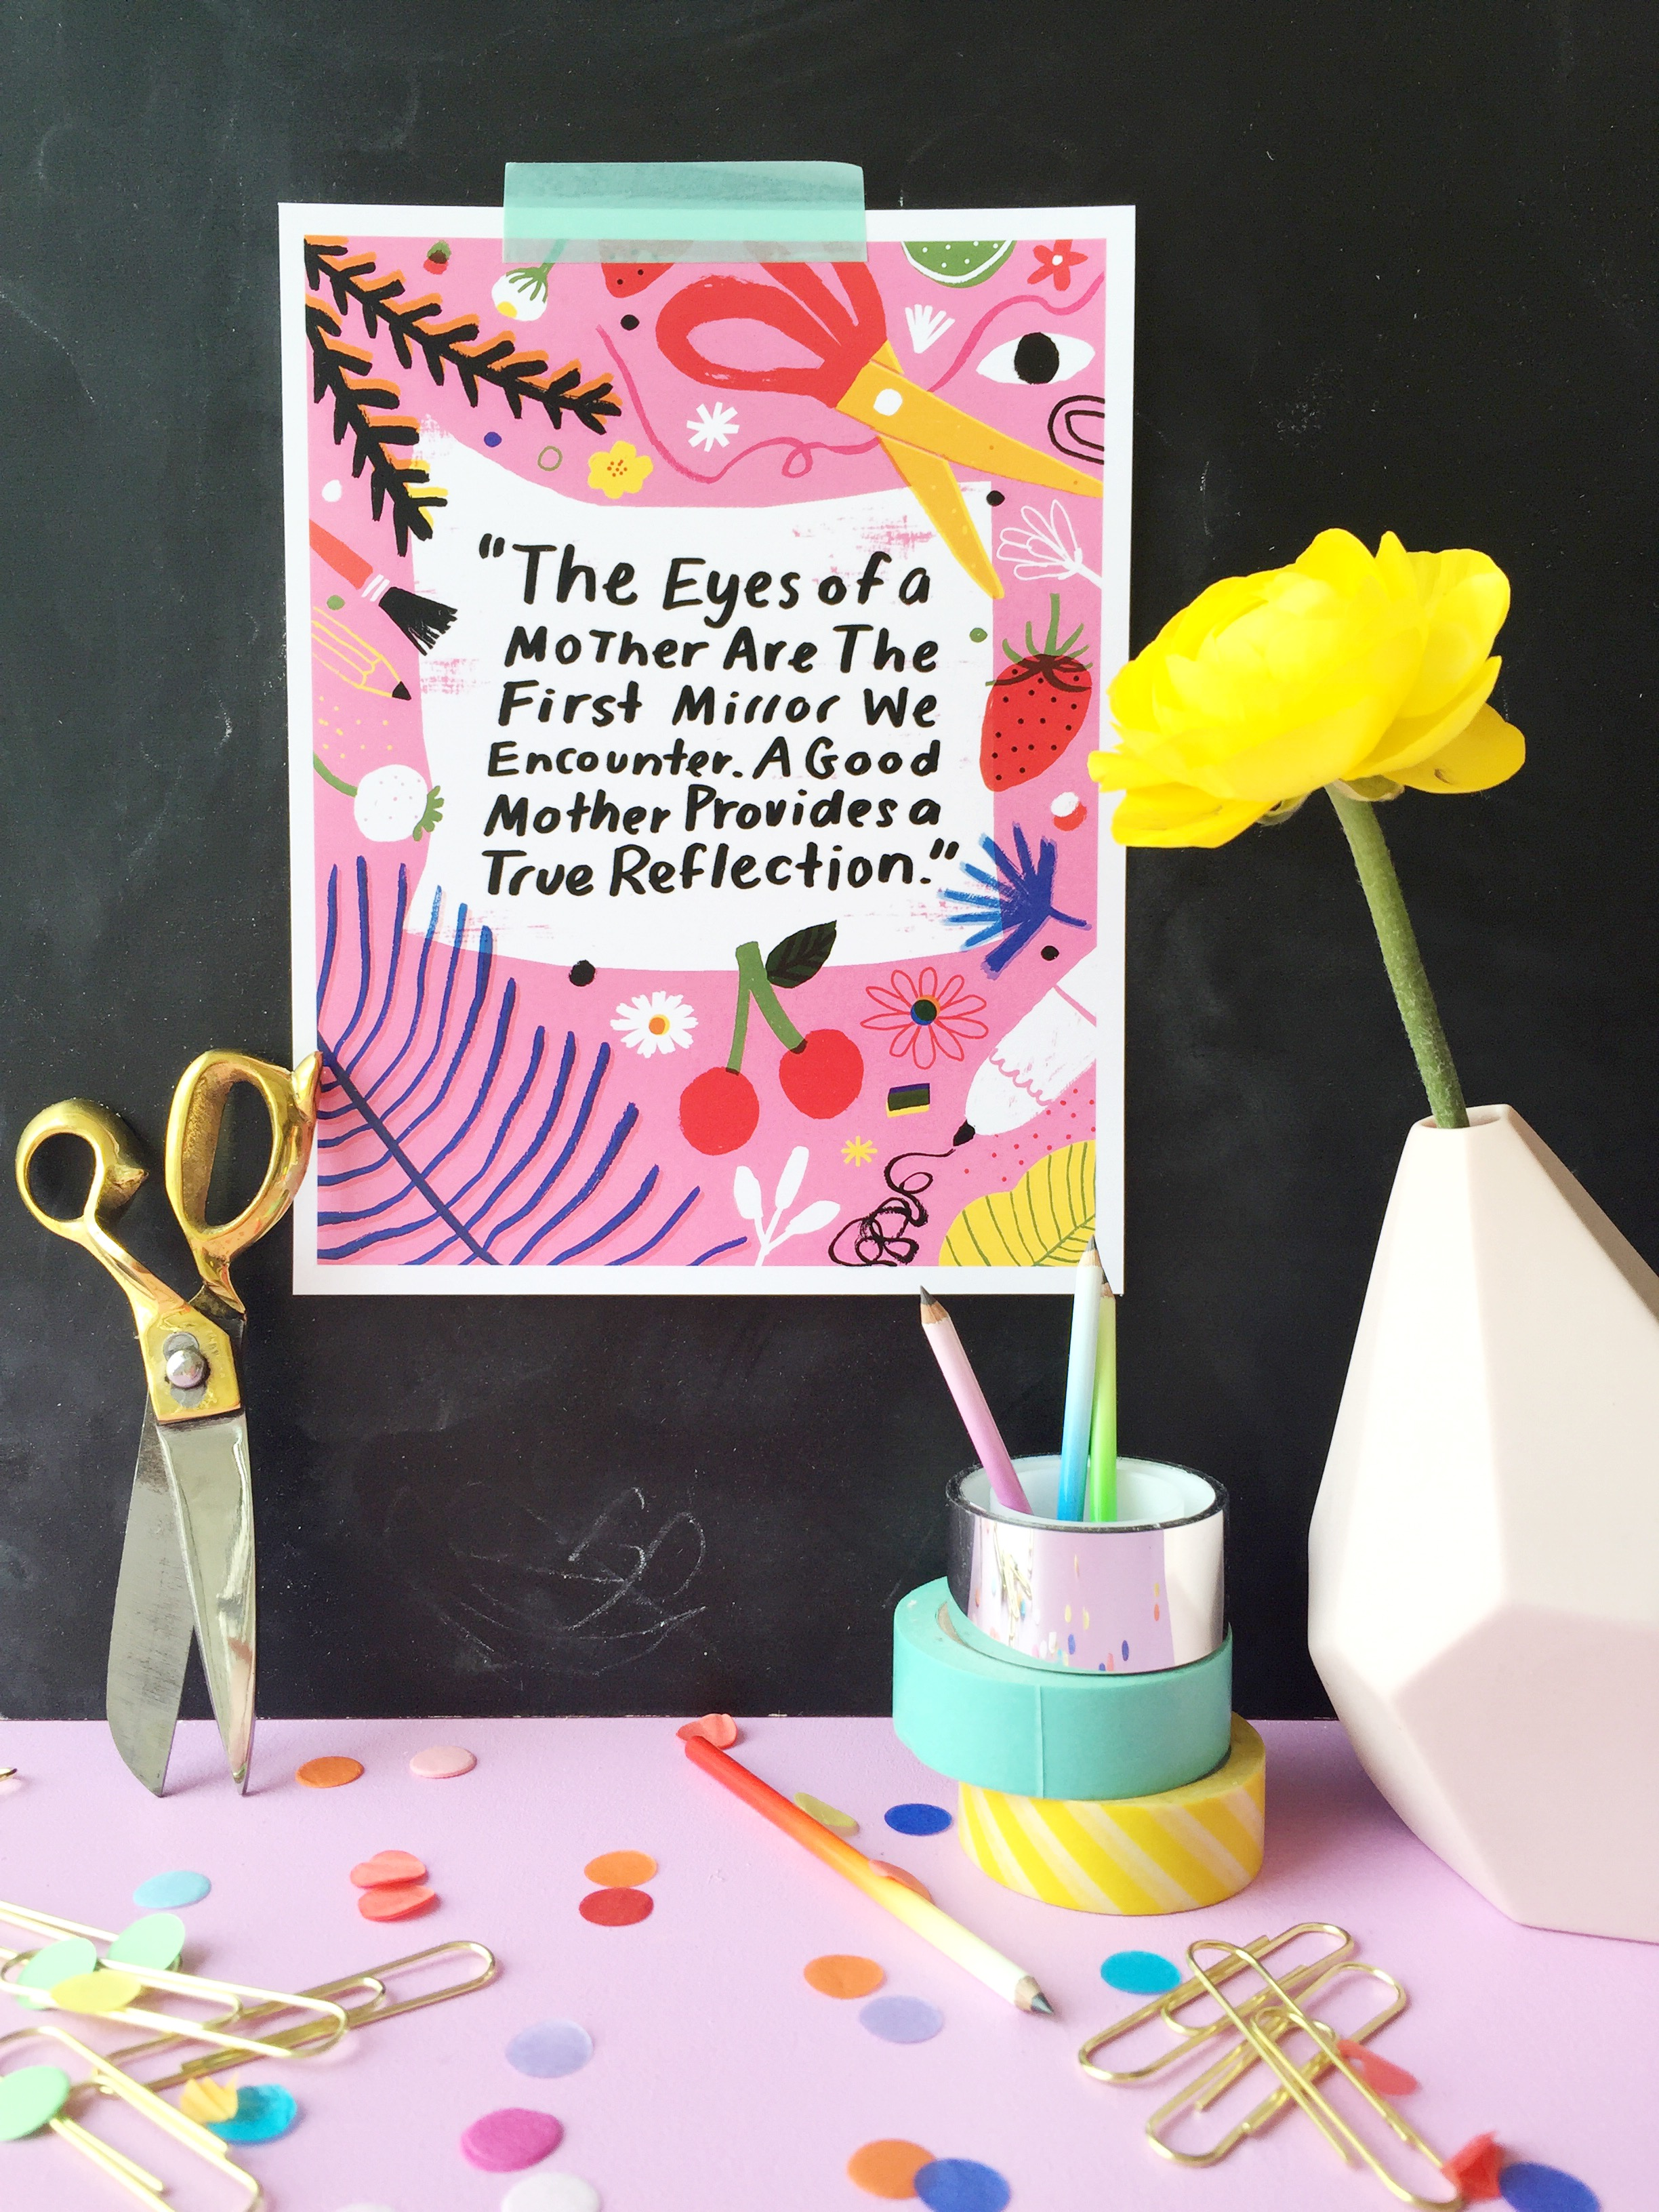 mother's day quote on The House That Lars Built illustrated by Jordan Sondler